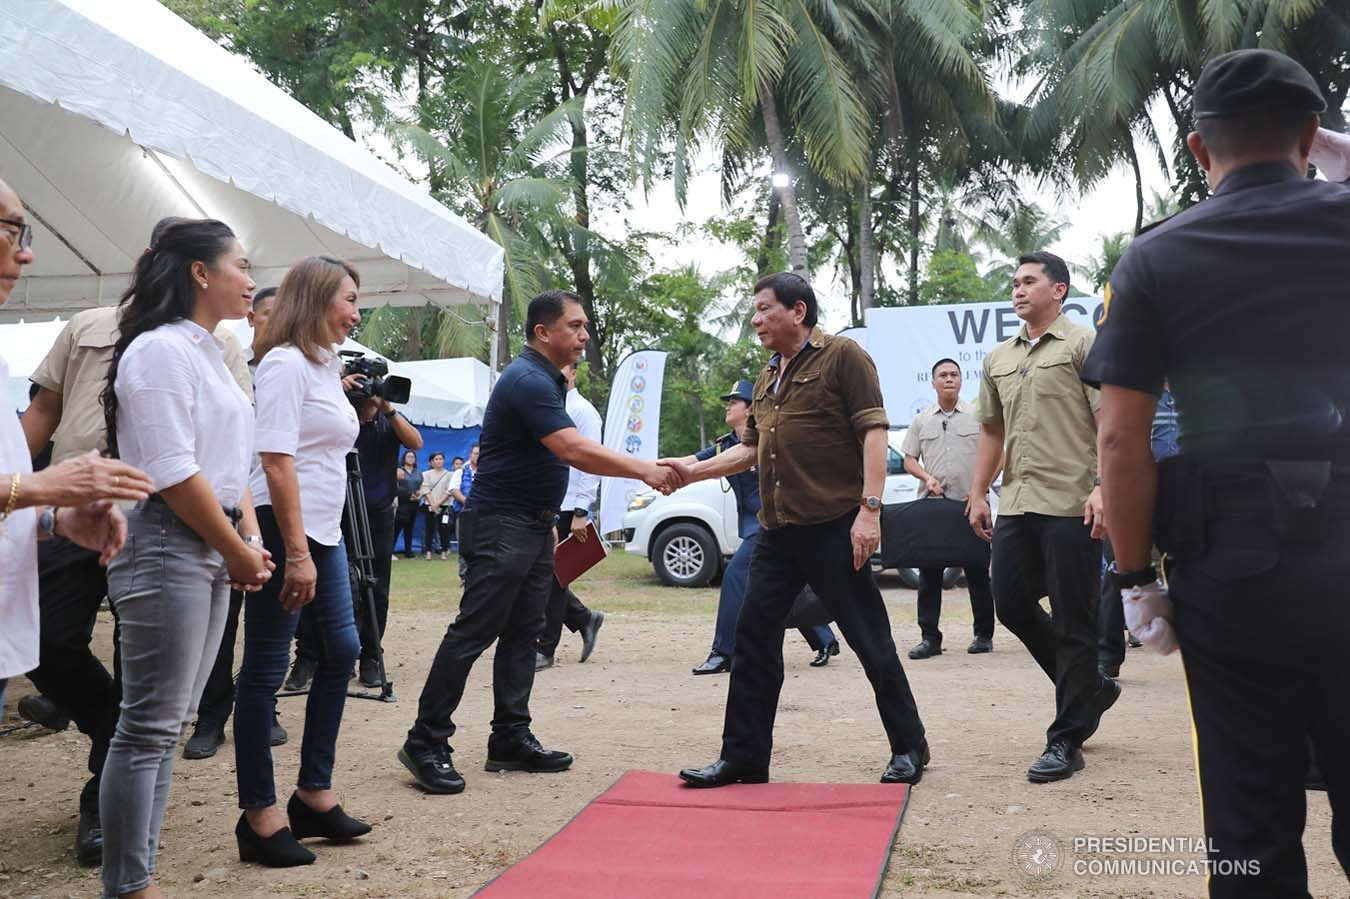 President Rodrigo Roa Duterte is welcomed by National Housing Authority General Manager Marcelino Escalada Jr. upon his arrival to lead the groundbreaking ceremony and time capsule laying of the Naga Permanent Housing Project in Naga City, Cebu on September 6, 2019. ALFRED FRIAS/ PRESIDENTIAL PHOTO